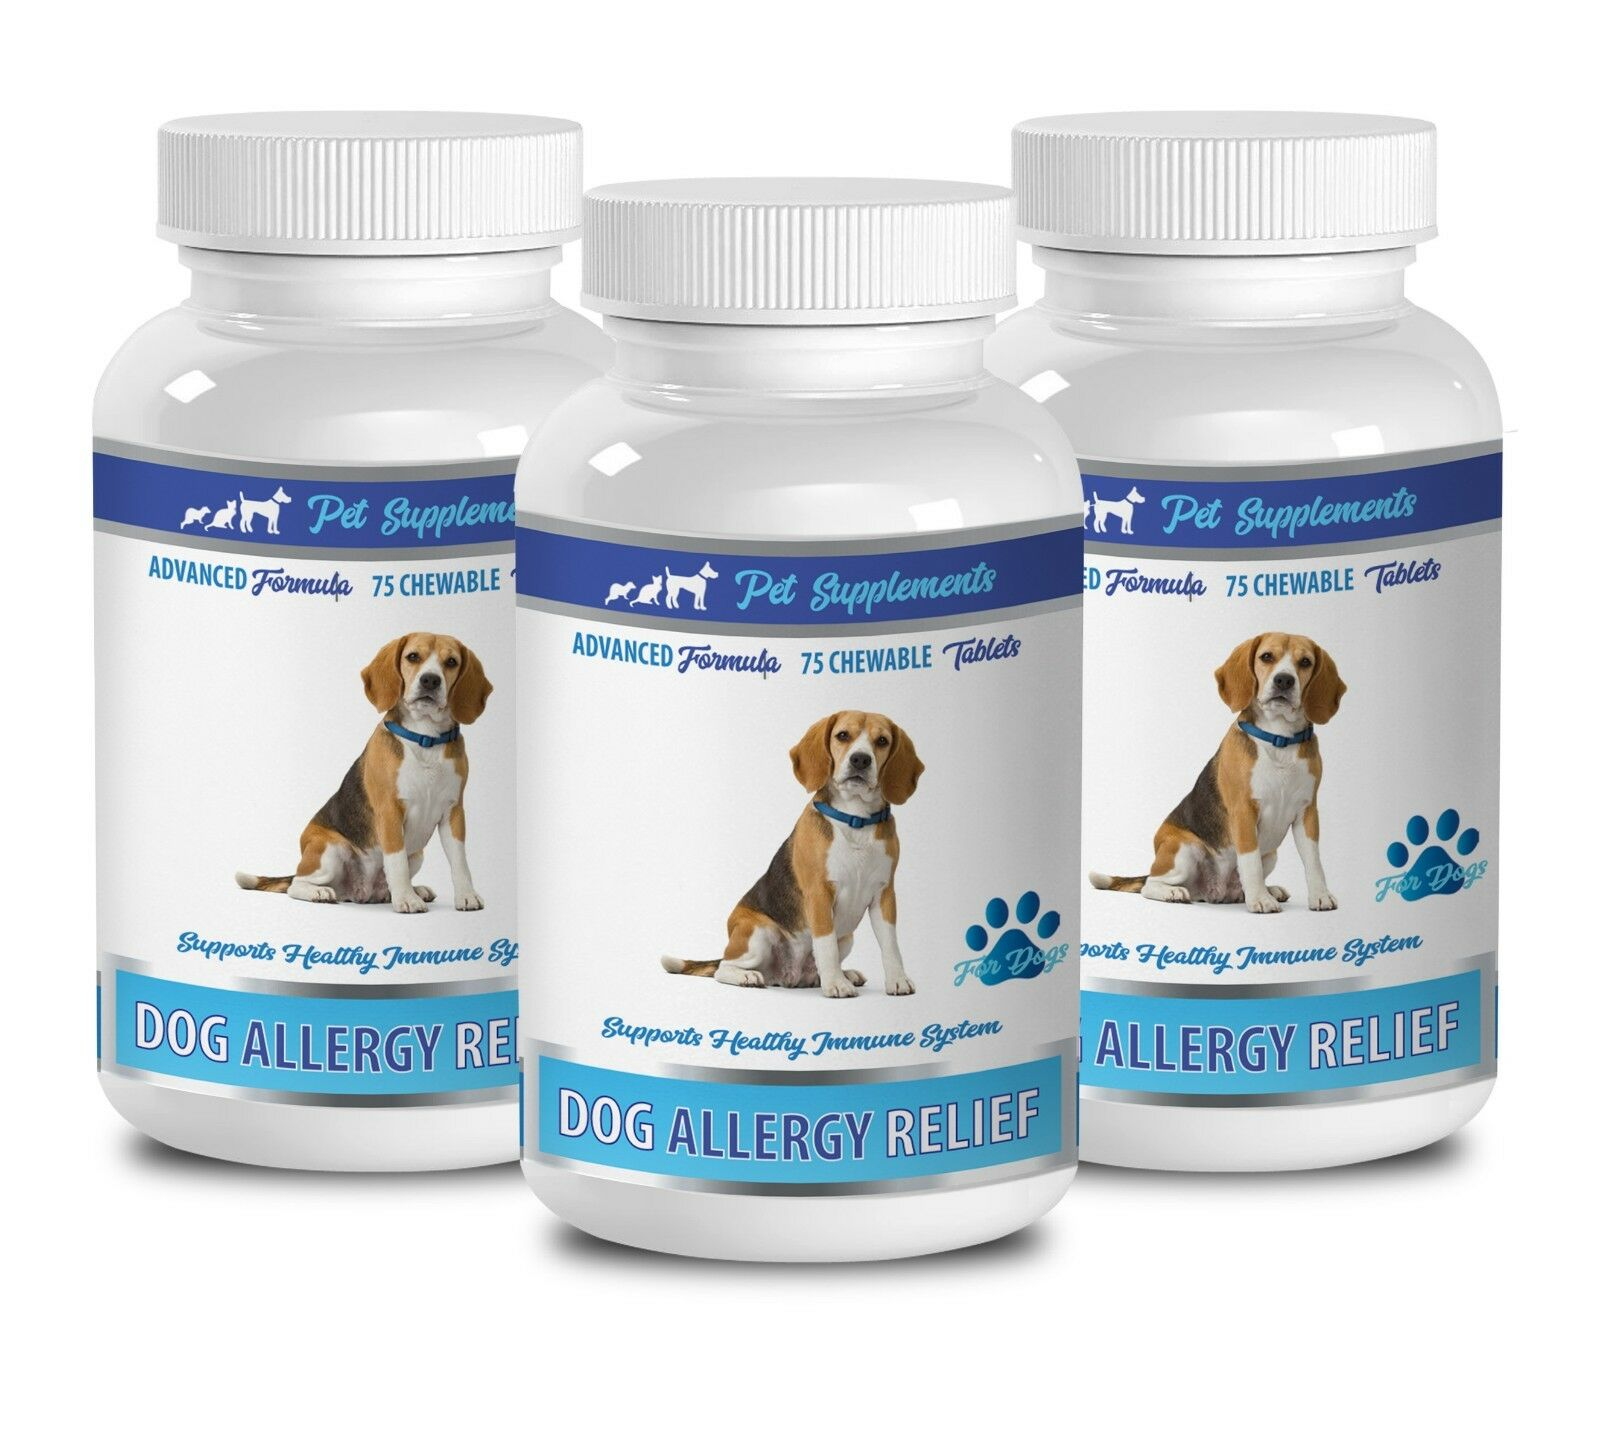 Dogs allergy relief - DOG ALLERGY RELIEF 3B- CHEWABLE - turmeric dog chews